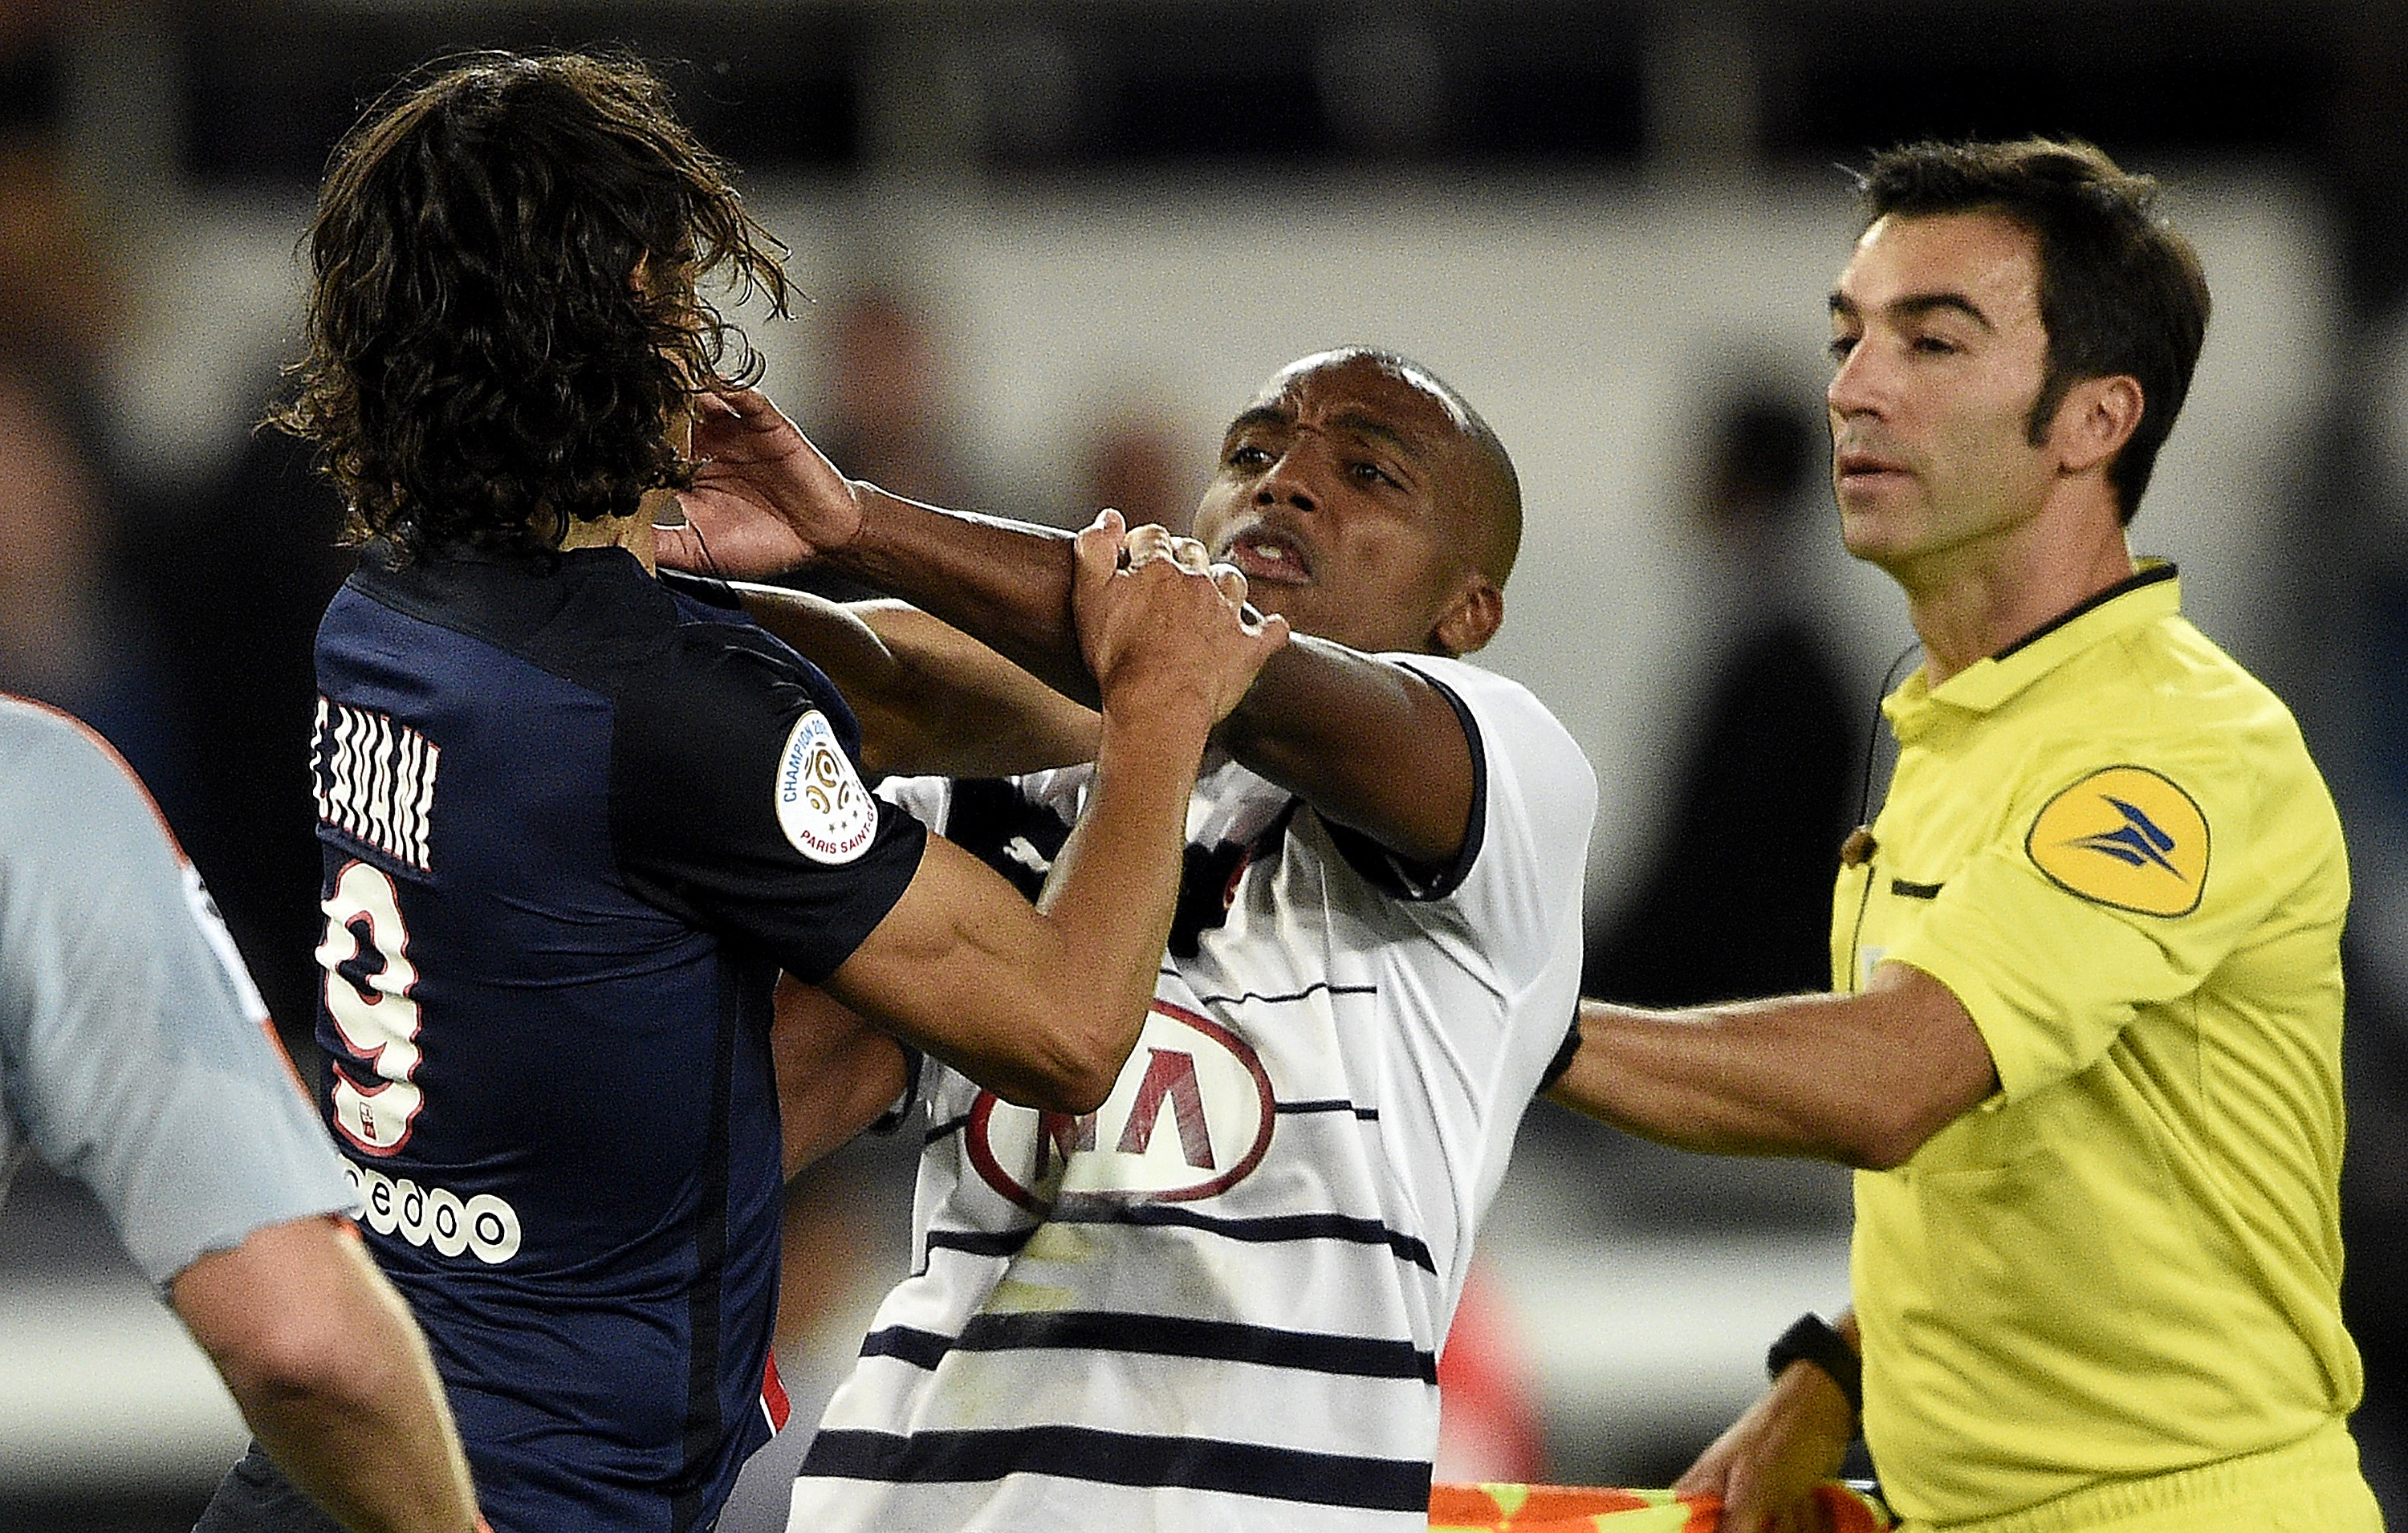 Paris Saint-Germain's Uruguayan forward Edinson Cavani (L) scuffles with Bordeaux's French midfielder Nicolas Maurice-Belay (C) at the end of the French L1 football match between Paris Saint-Germain (PSG) and Bordeaux at the Parc des Princes stadium in Paris on September 11, 2015. AFP PHOTO / FRANCK FIFE        (Photo credit should read FRANCK FIFE/AFP/Getty Images)